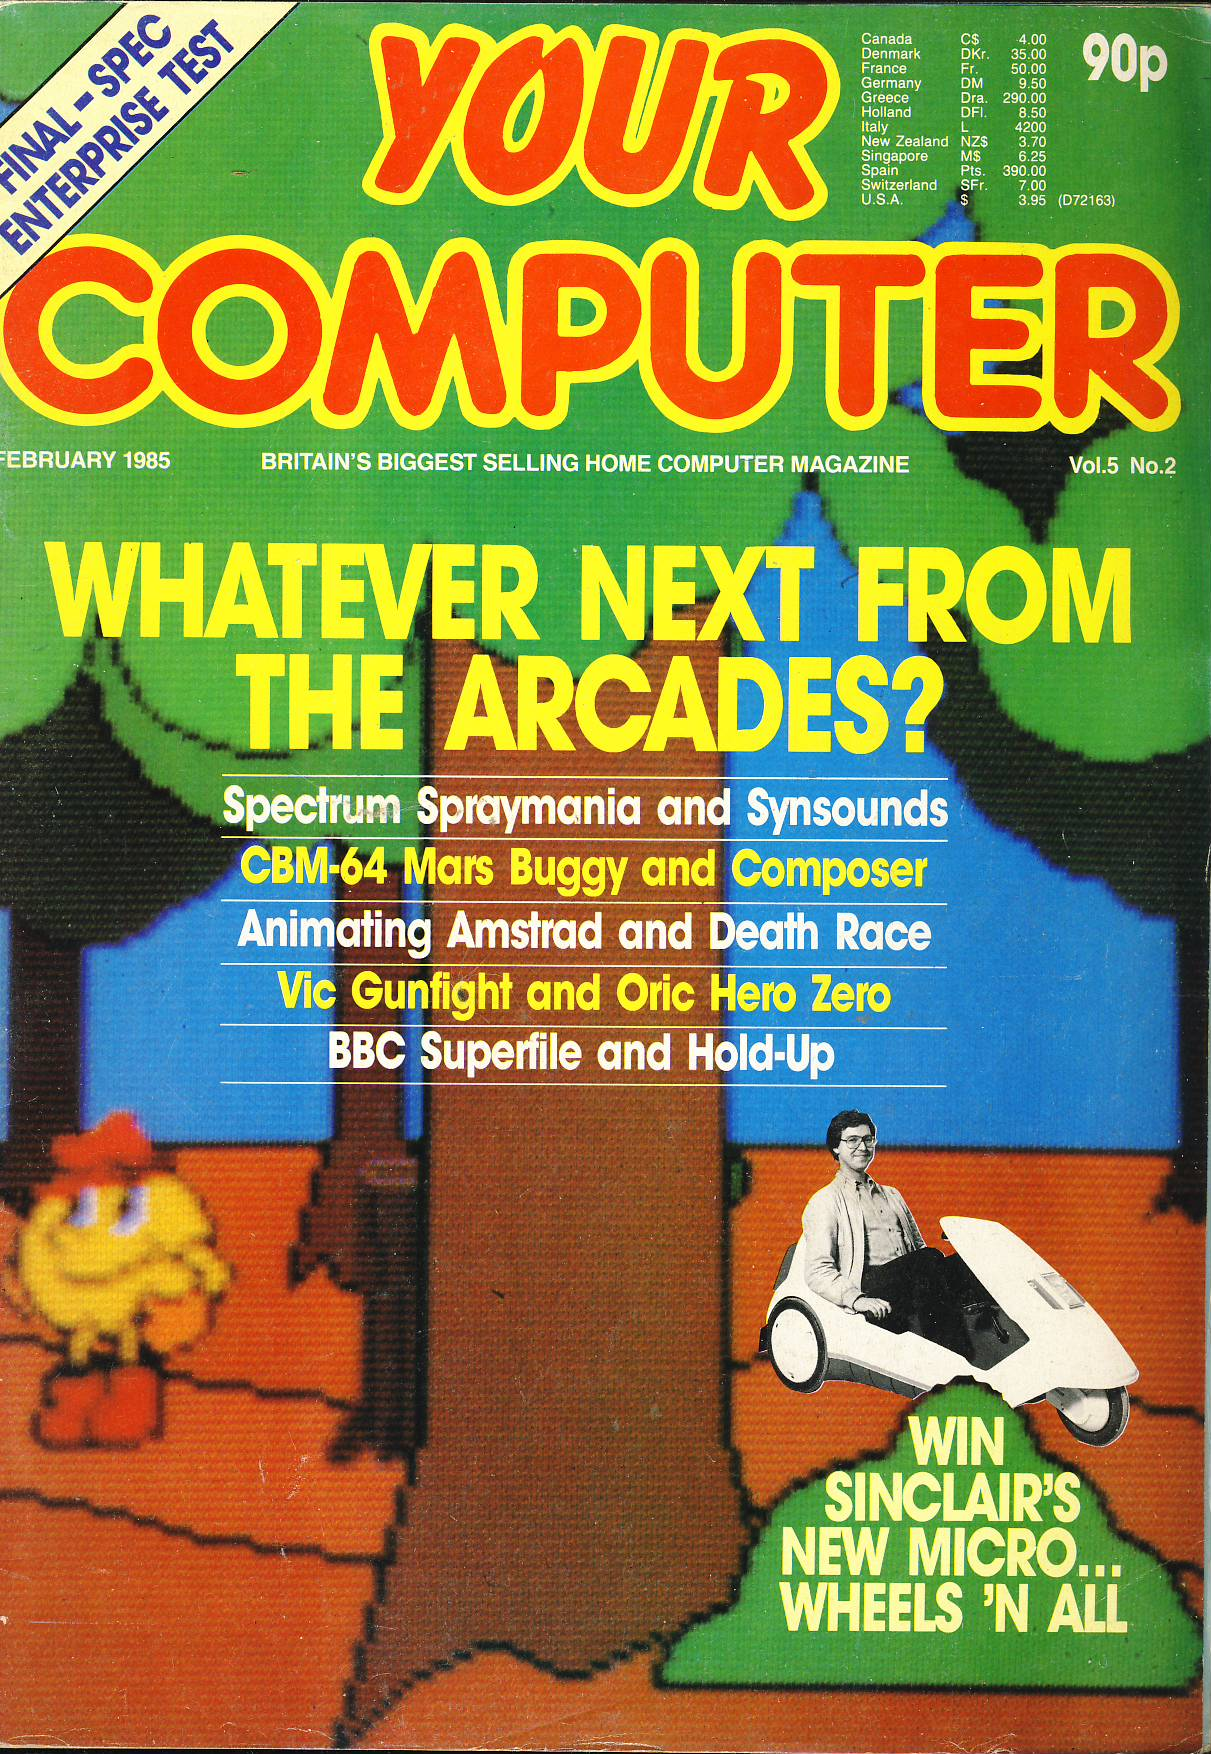 Whatever Next From the Arcades?  Some great vintage adverts for computers and games. Pre-owned vintage mgazine in good read condition. Please see large photo for more details.